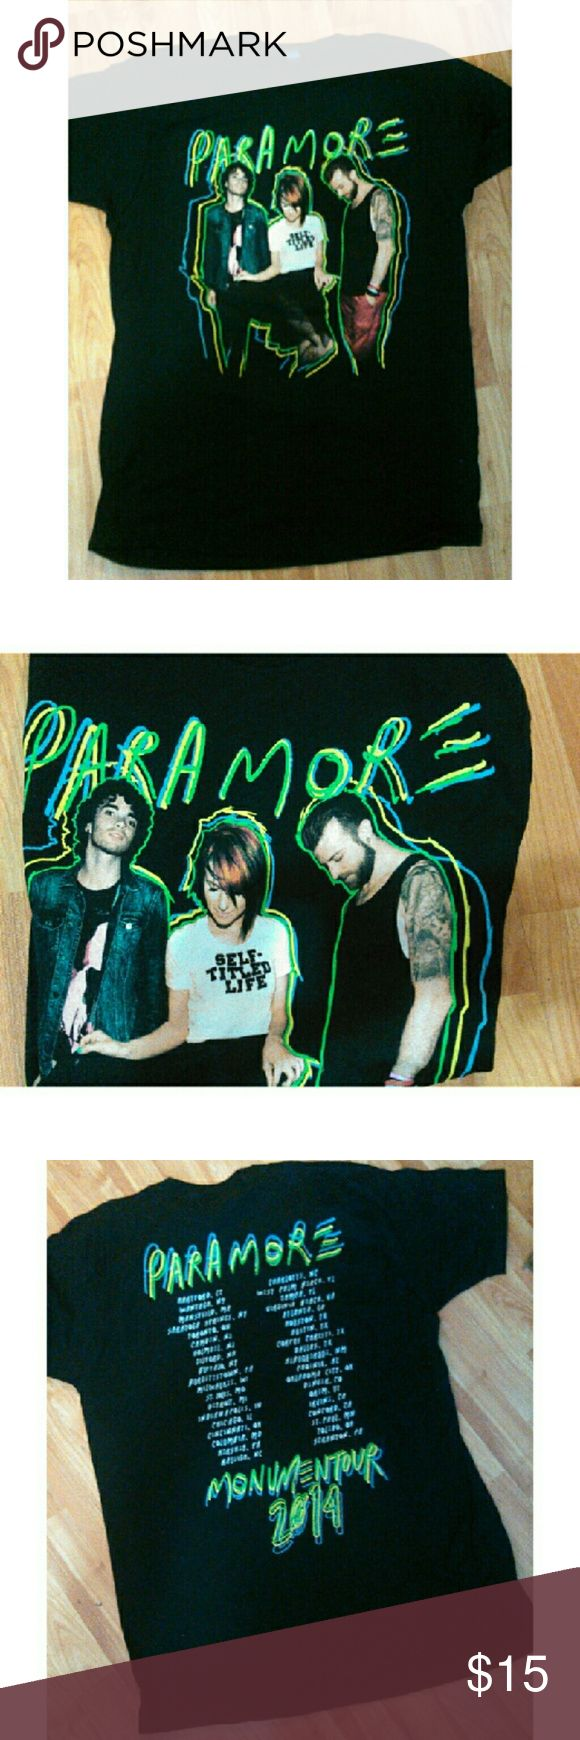 Paramore T-shirt Black Paramore shirt sleeve T-shirt Has band in front and 2014 tour dates on the back 100% Cotton Brand new  Preshrunk   *I sell on Mer as well -Veronica R - Tops Tees - Short Sleeve